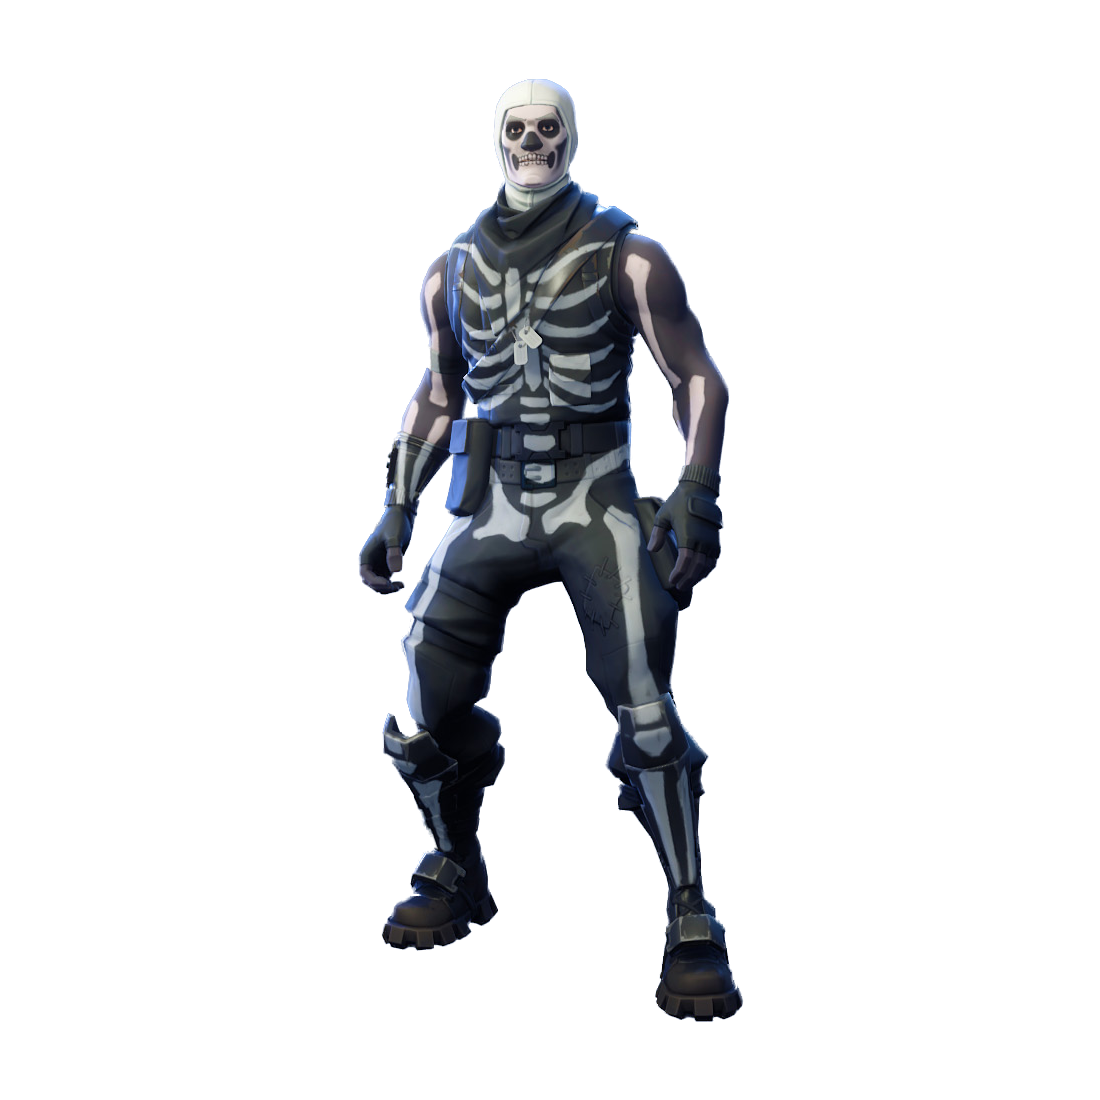 Skull trooper clipart free. Fortnite png image purepng